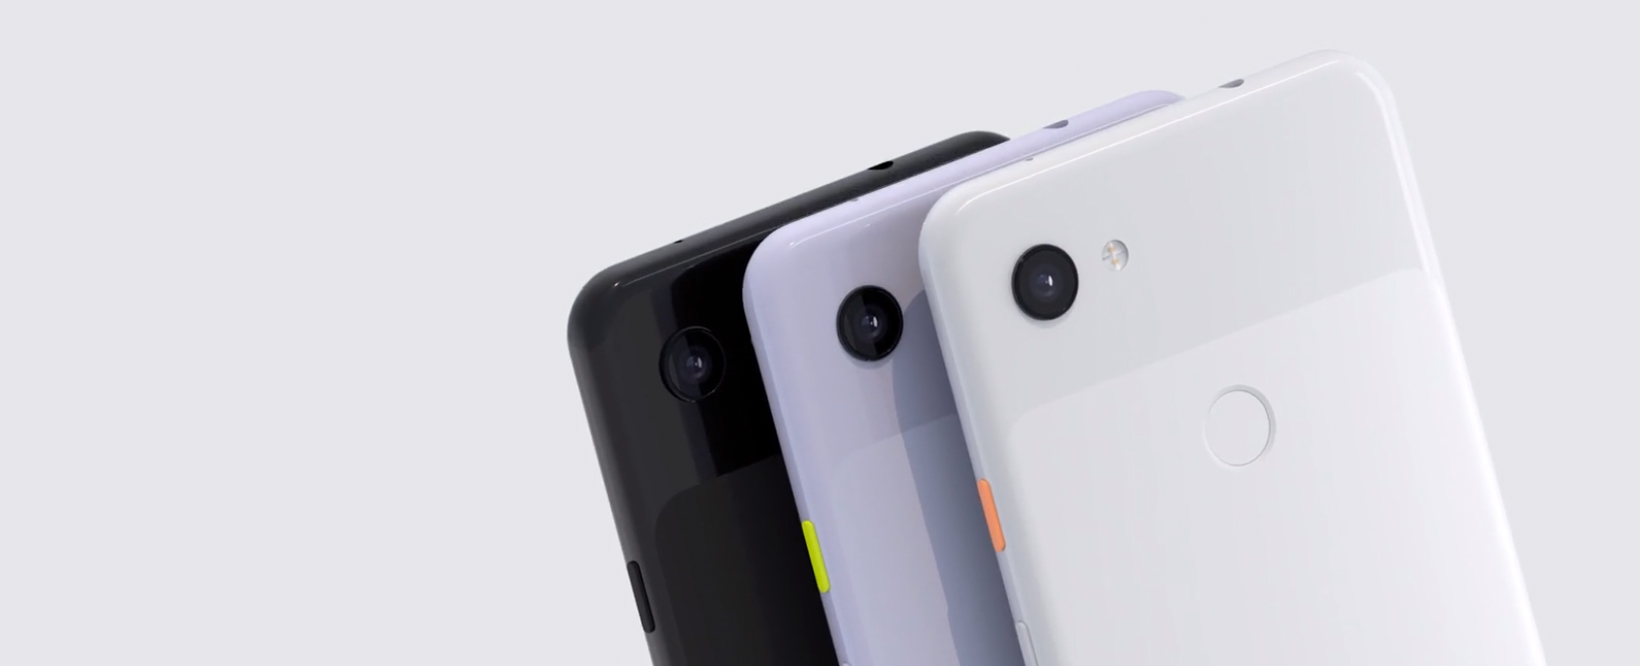 Google's Pixel 4 poses a major security risk with 'Face Unlock'